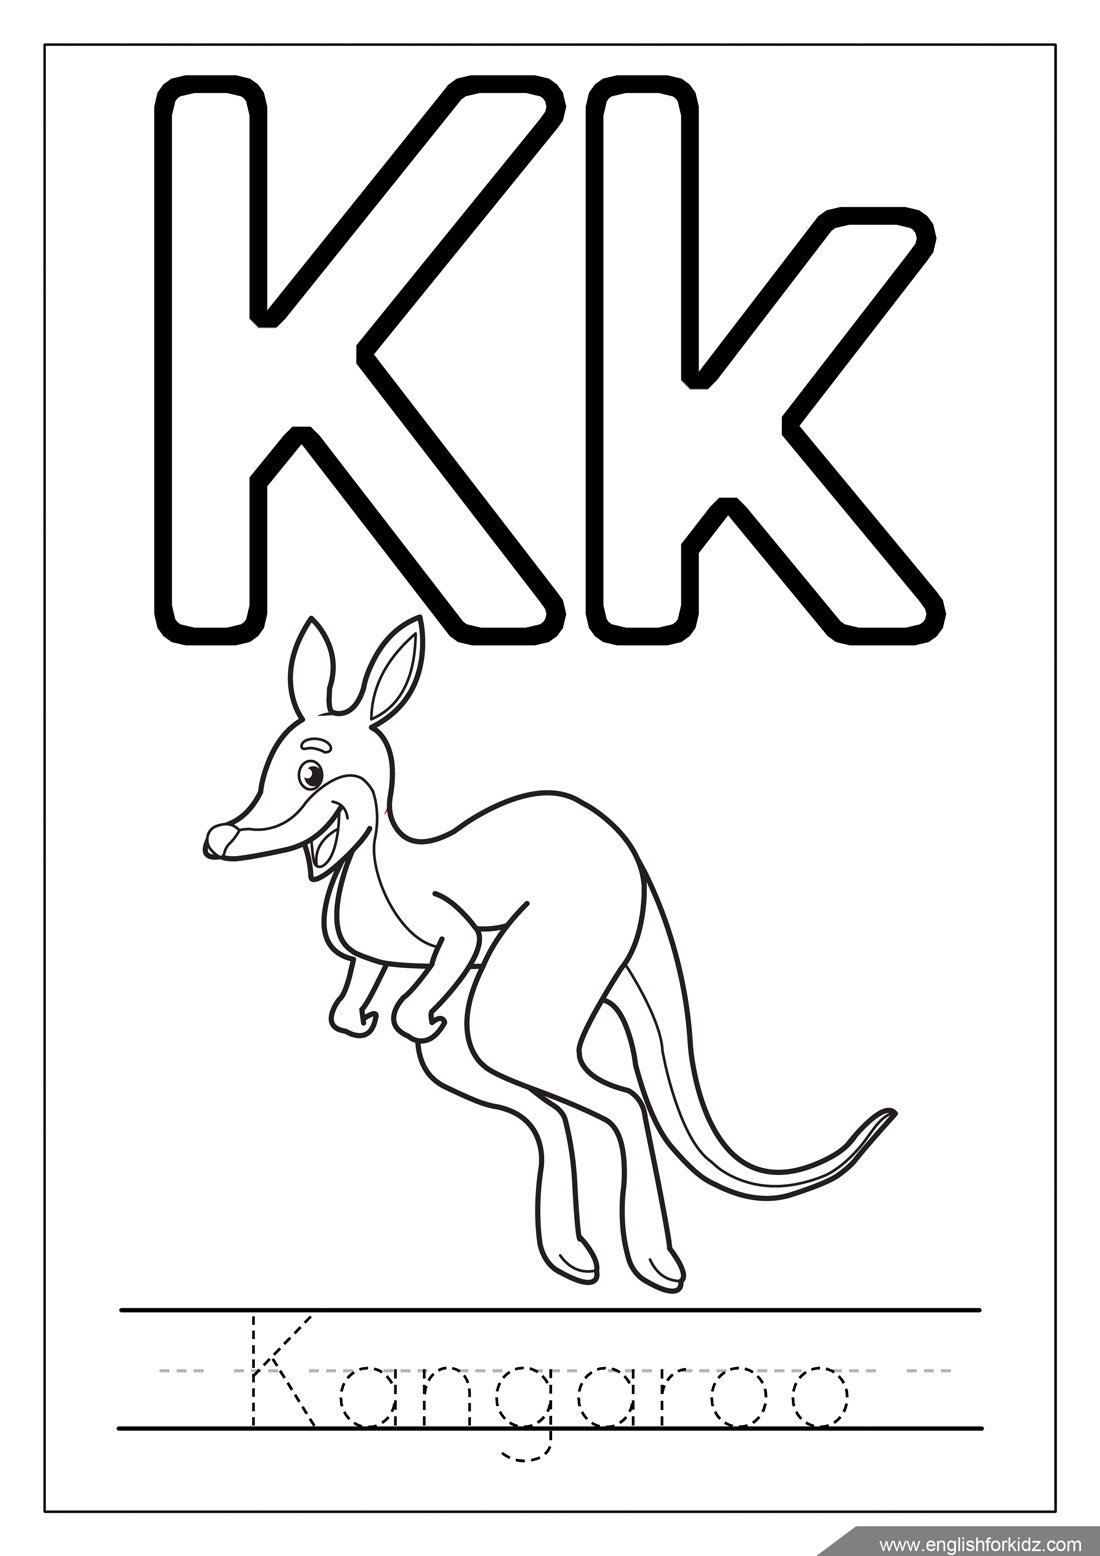 Abc Coloring Pages Pdf : Coloring pages alphabet az img